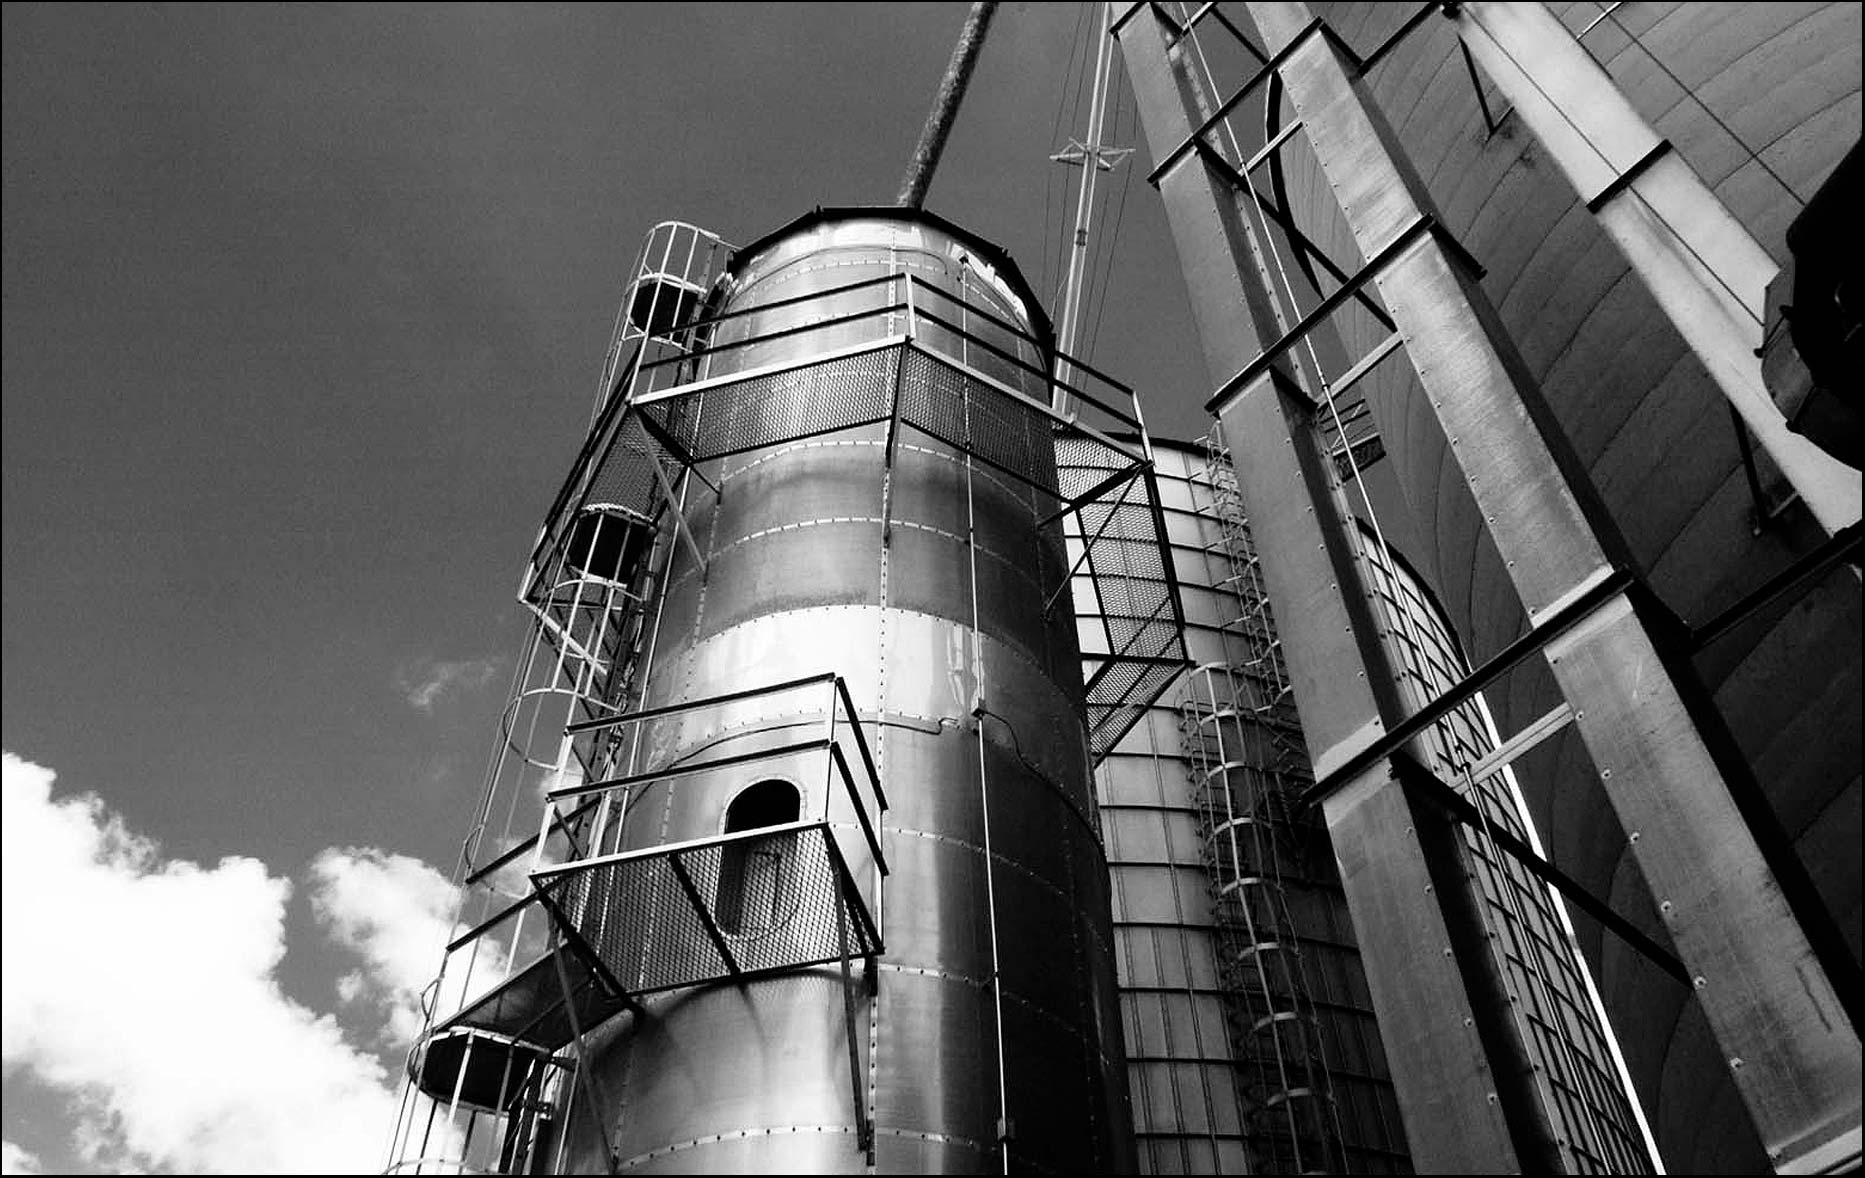 Black and white infrared silos